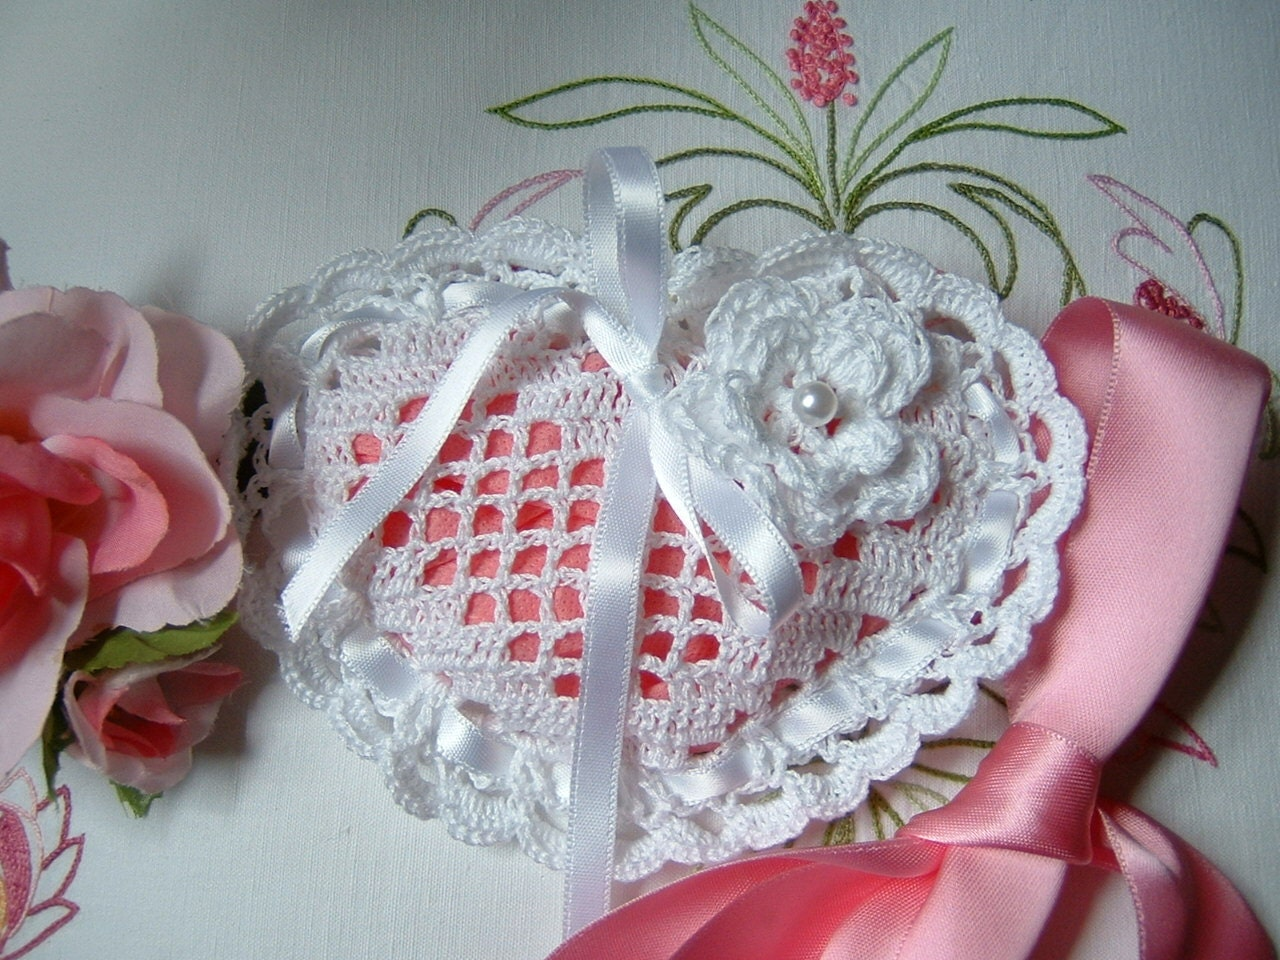 Crochet Wedding Gift: Crochet Wedding Favor Bag. Cotton White Heart Shaped Wedding